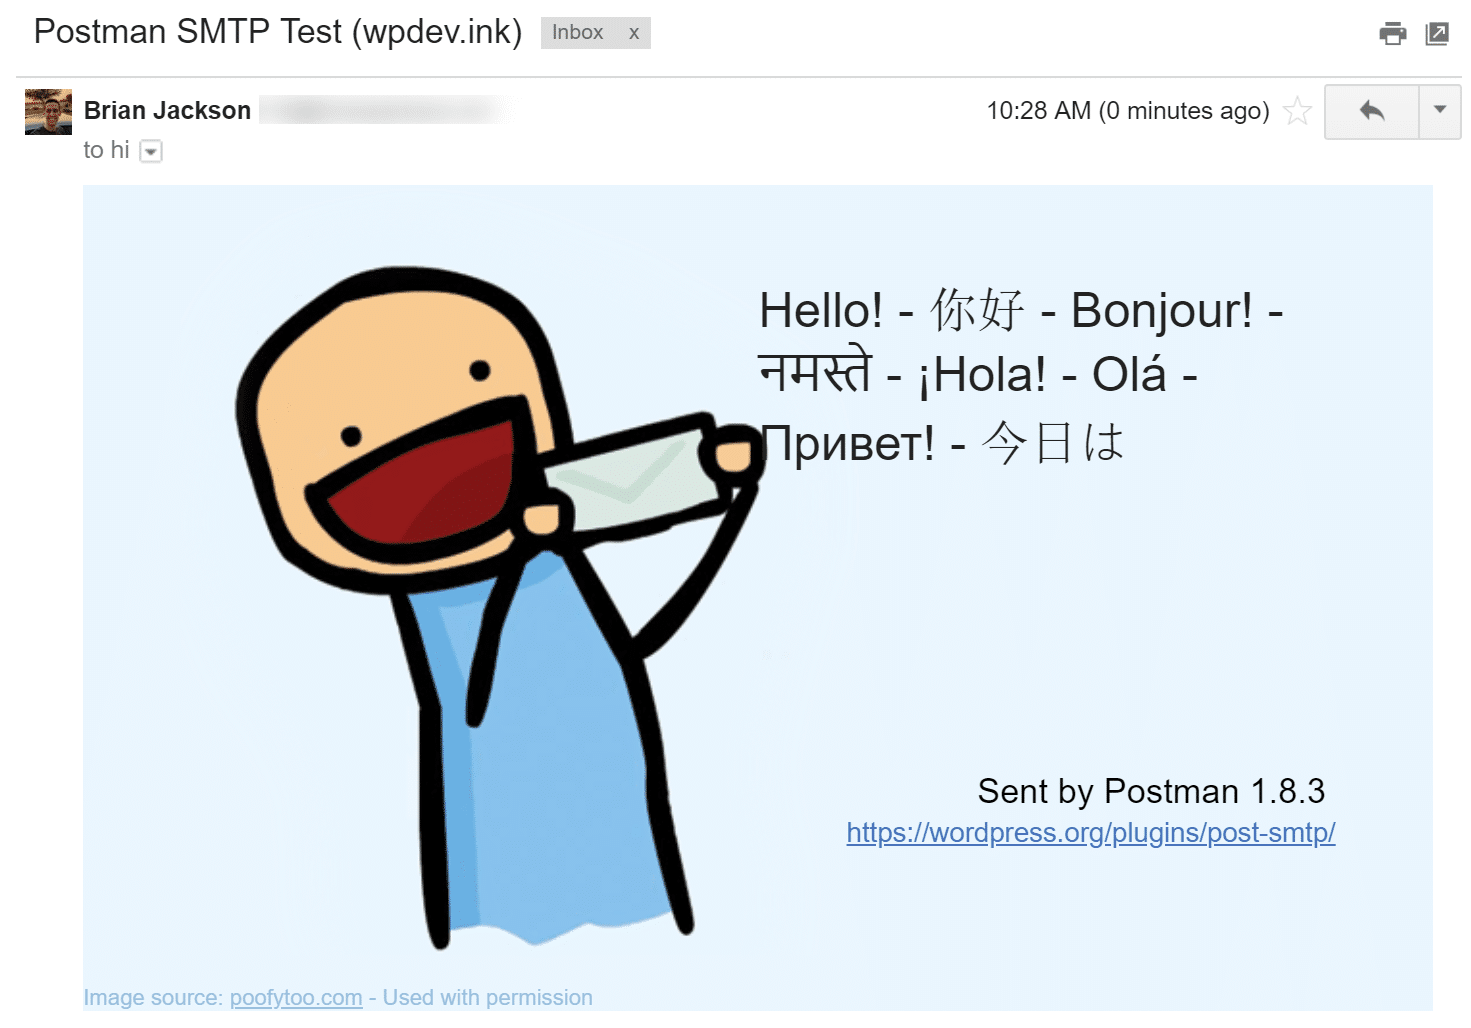 Successful test email